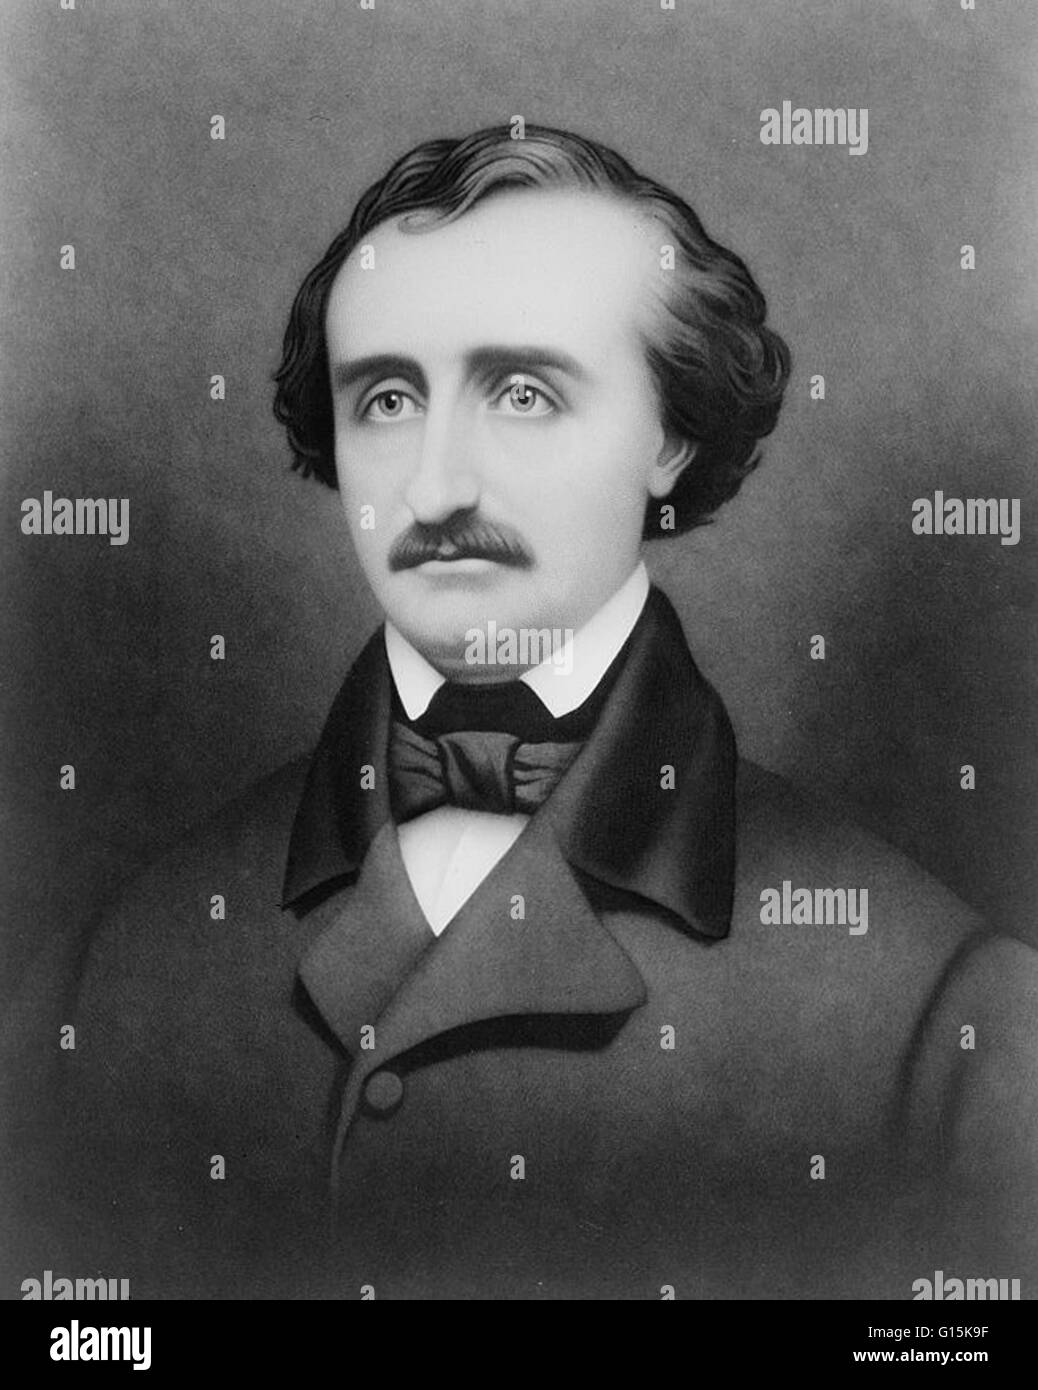 a biography of edgar allan poe an american author poet editor and literary critic considered part of Biography edgar allan poe was born in january 19, 1809, in boston massachusetts as a short-story writer, poet, critic, and editor, his tales of mystery and.